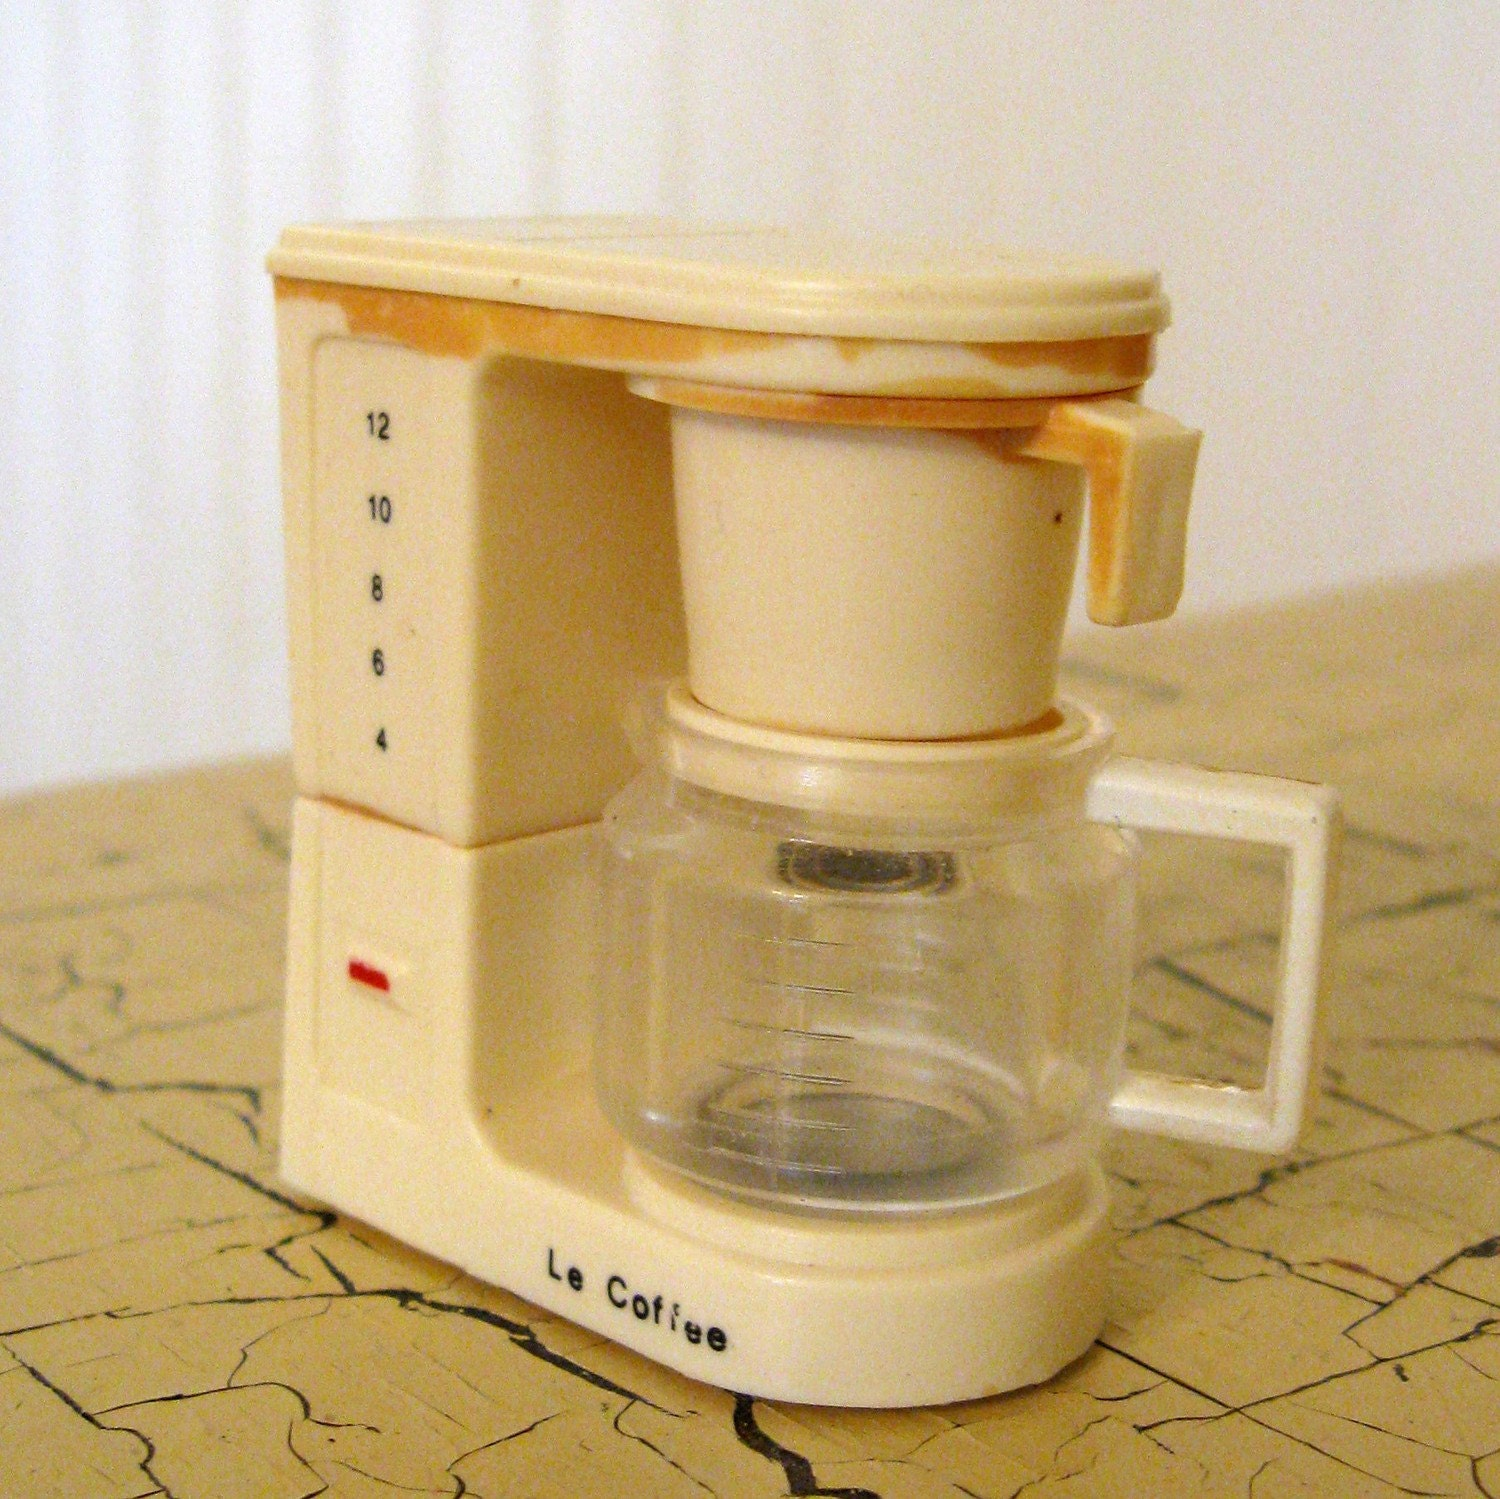 How To Use Vintage Coffee Maker : Retro Fridge Magnet Vintage Coffee Maker by Acme